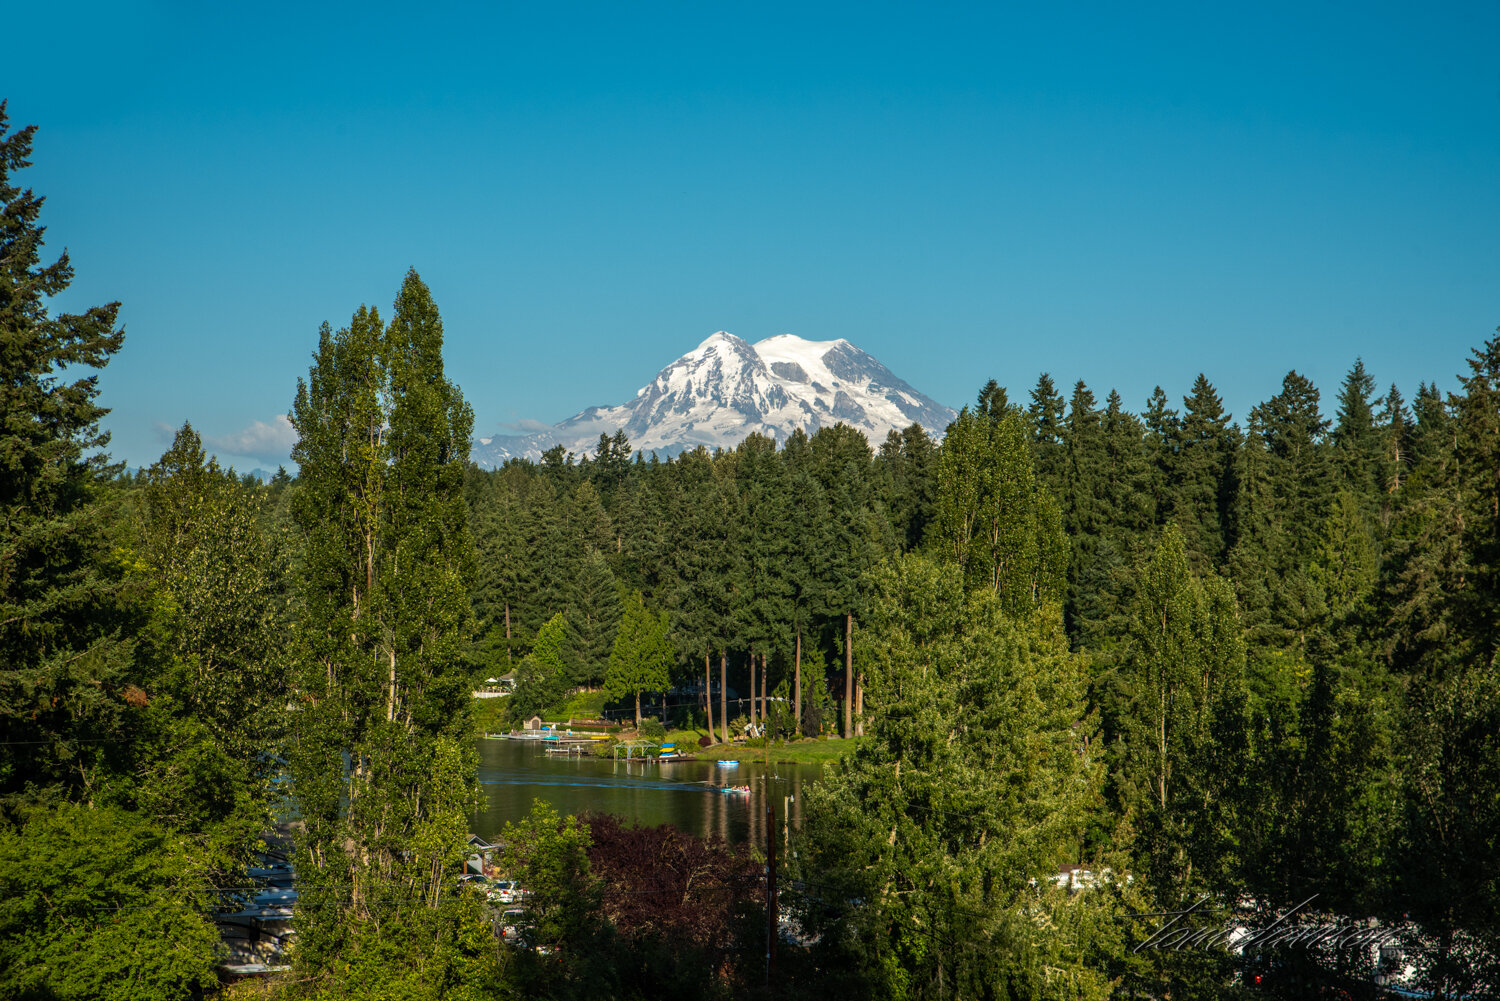 We stayed in a campground where Mt. Rainier could be seen from the road down into our camp.